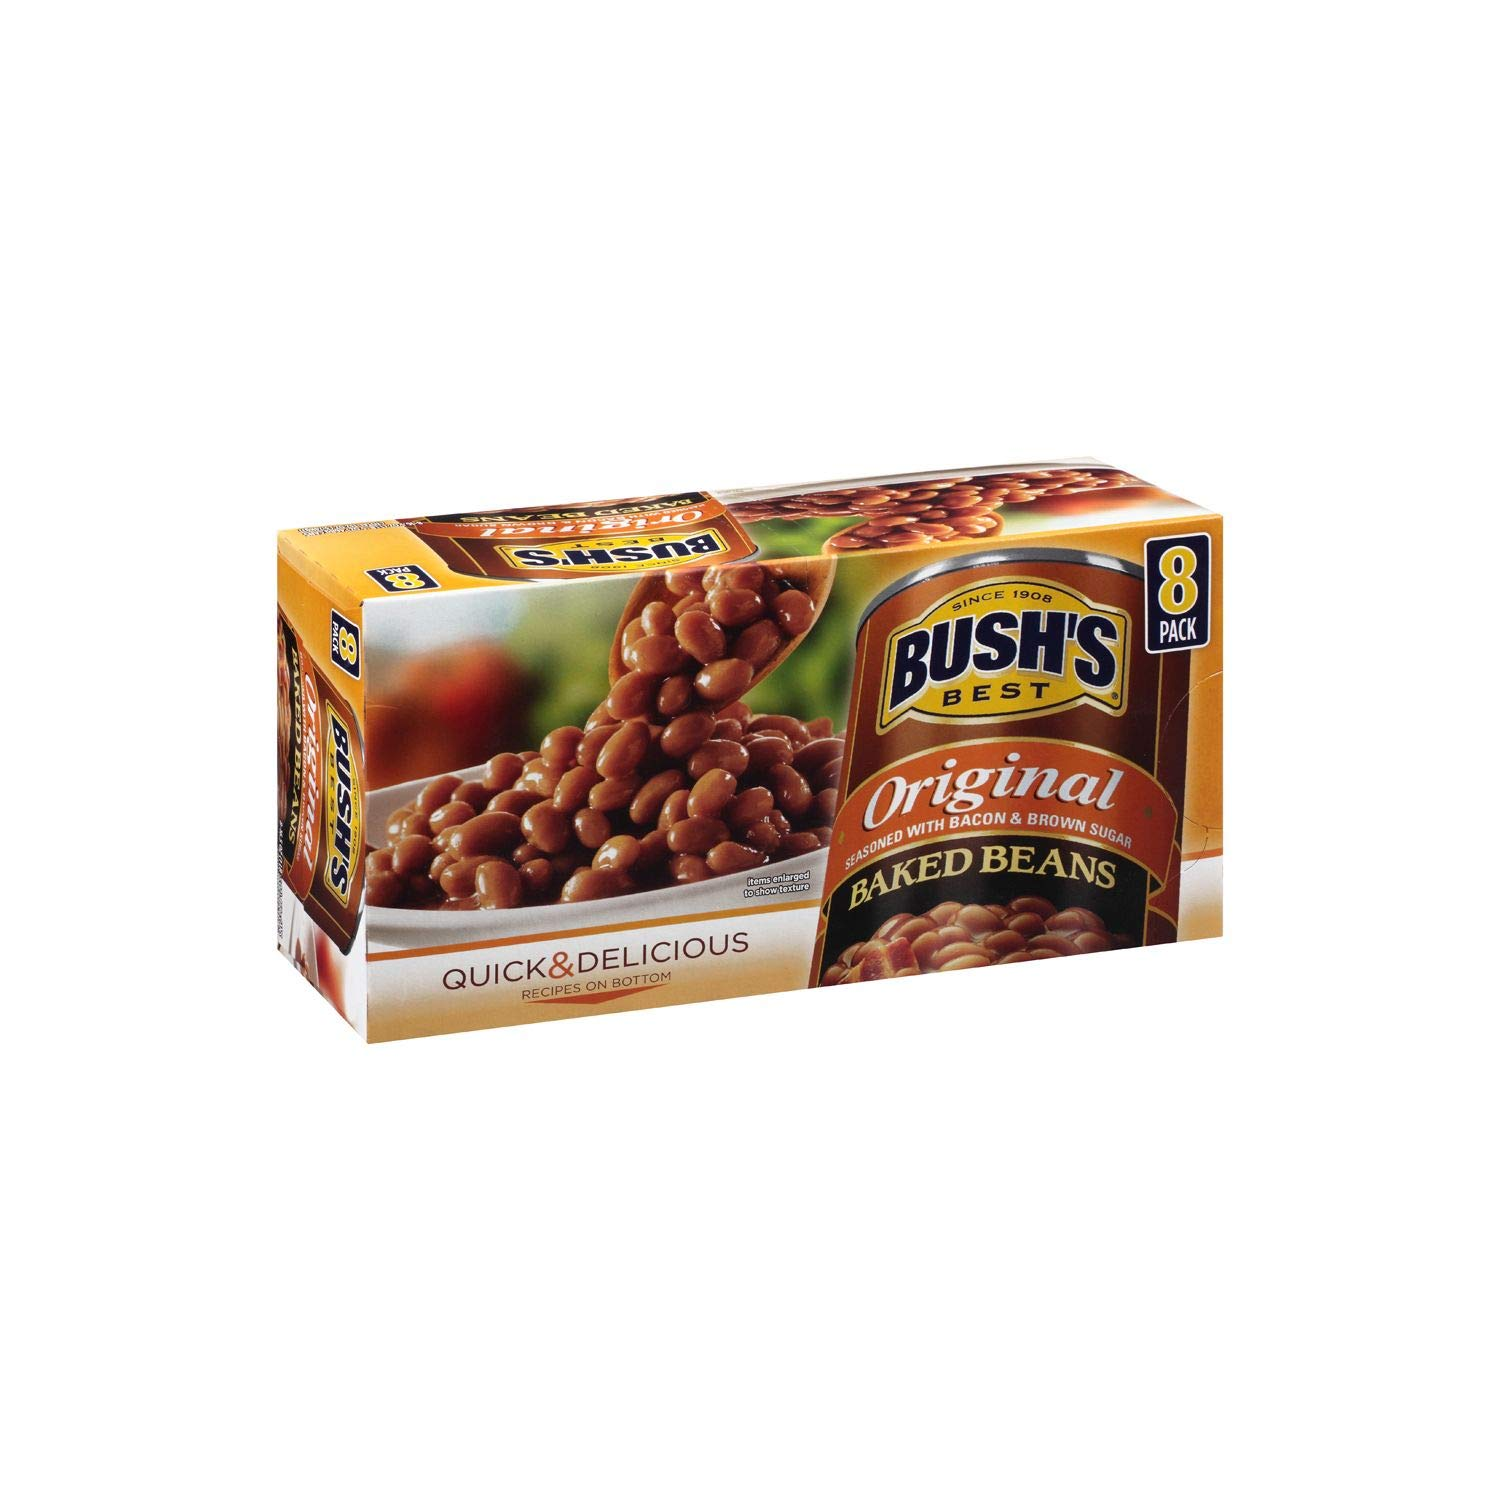 Bush Best Since 1908 Original Baked Beans Seasoned with Bacon & Brown Sugar 8 Pack of 16.5oz Each Sms10